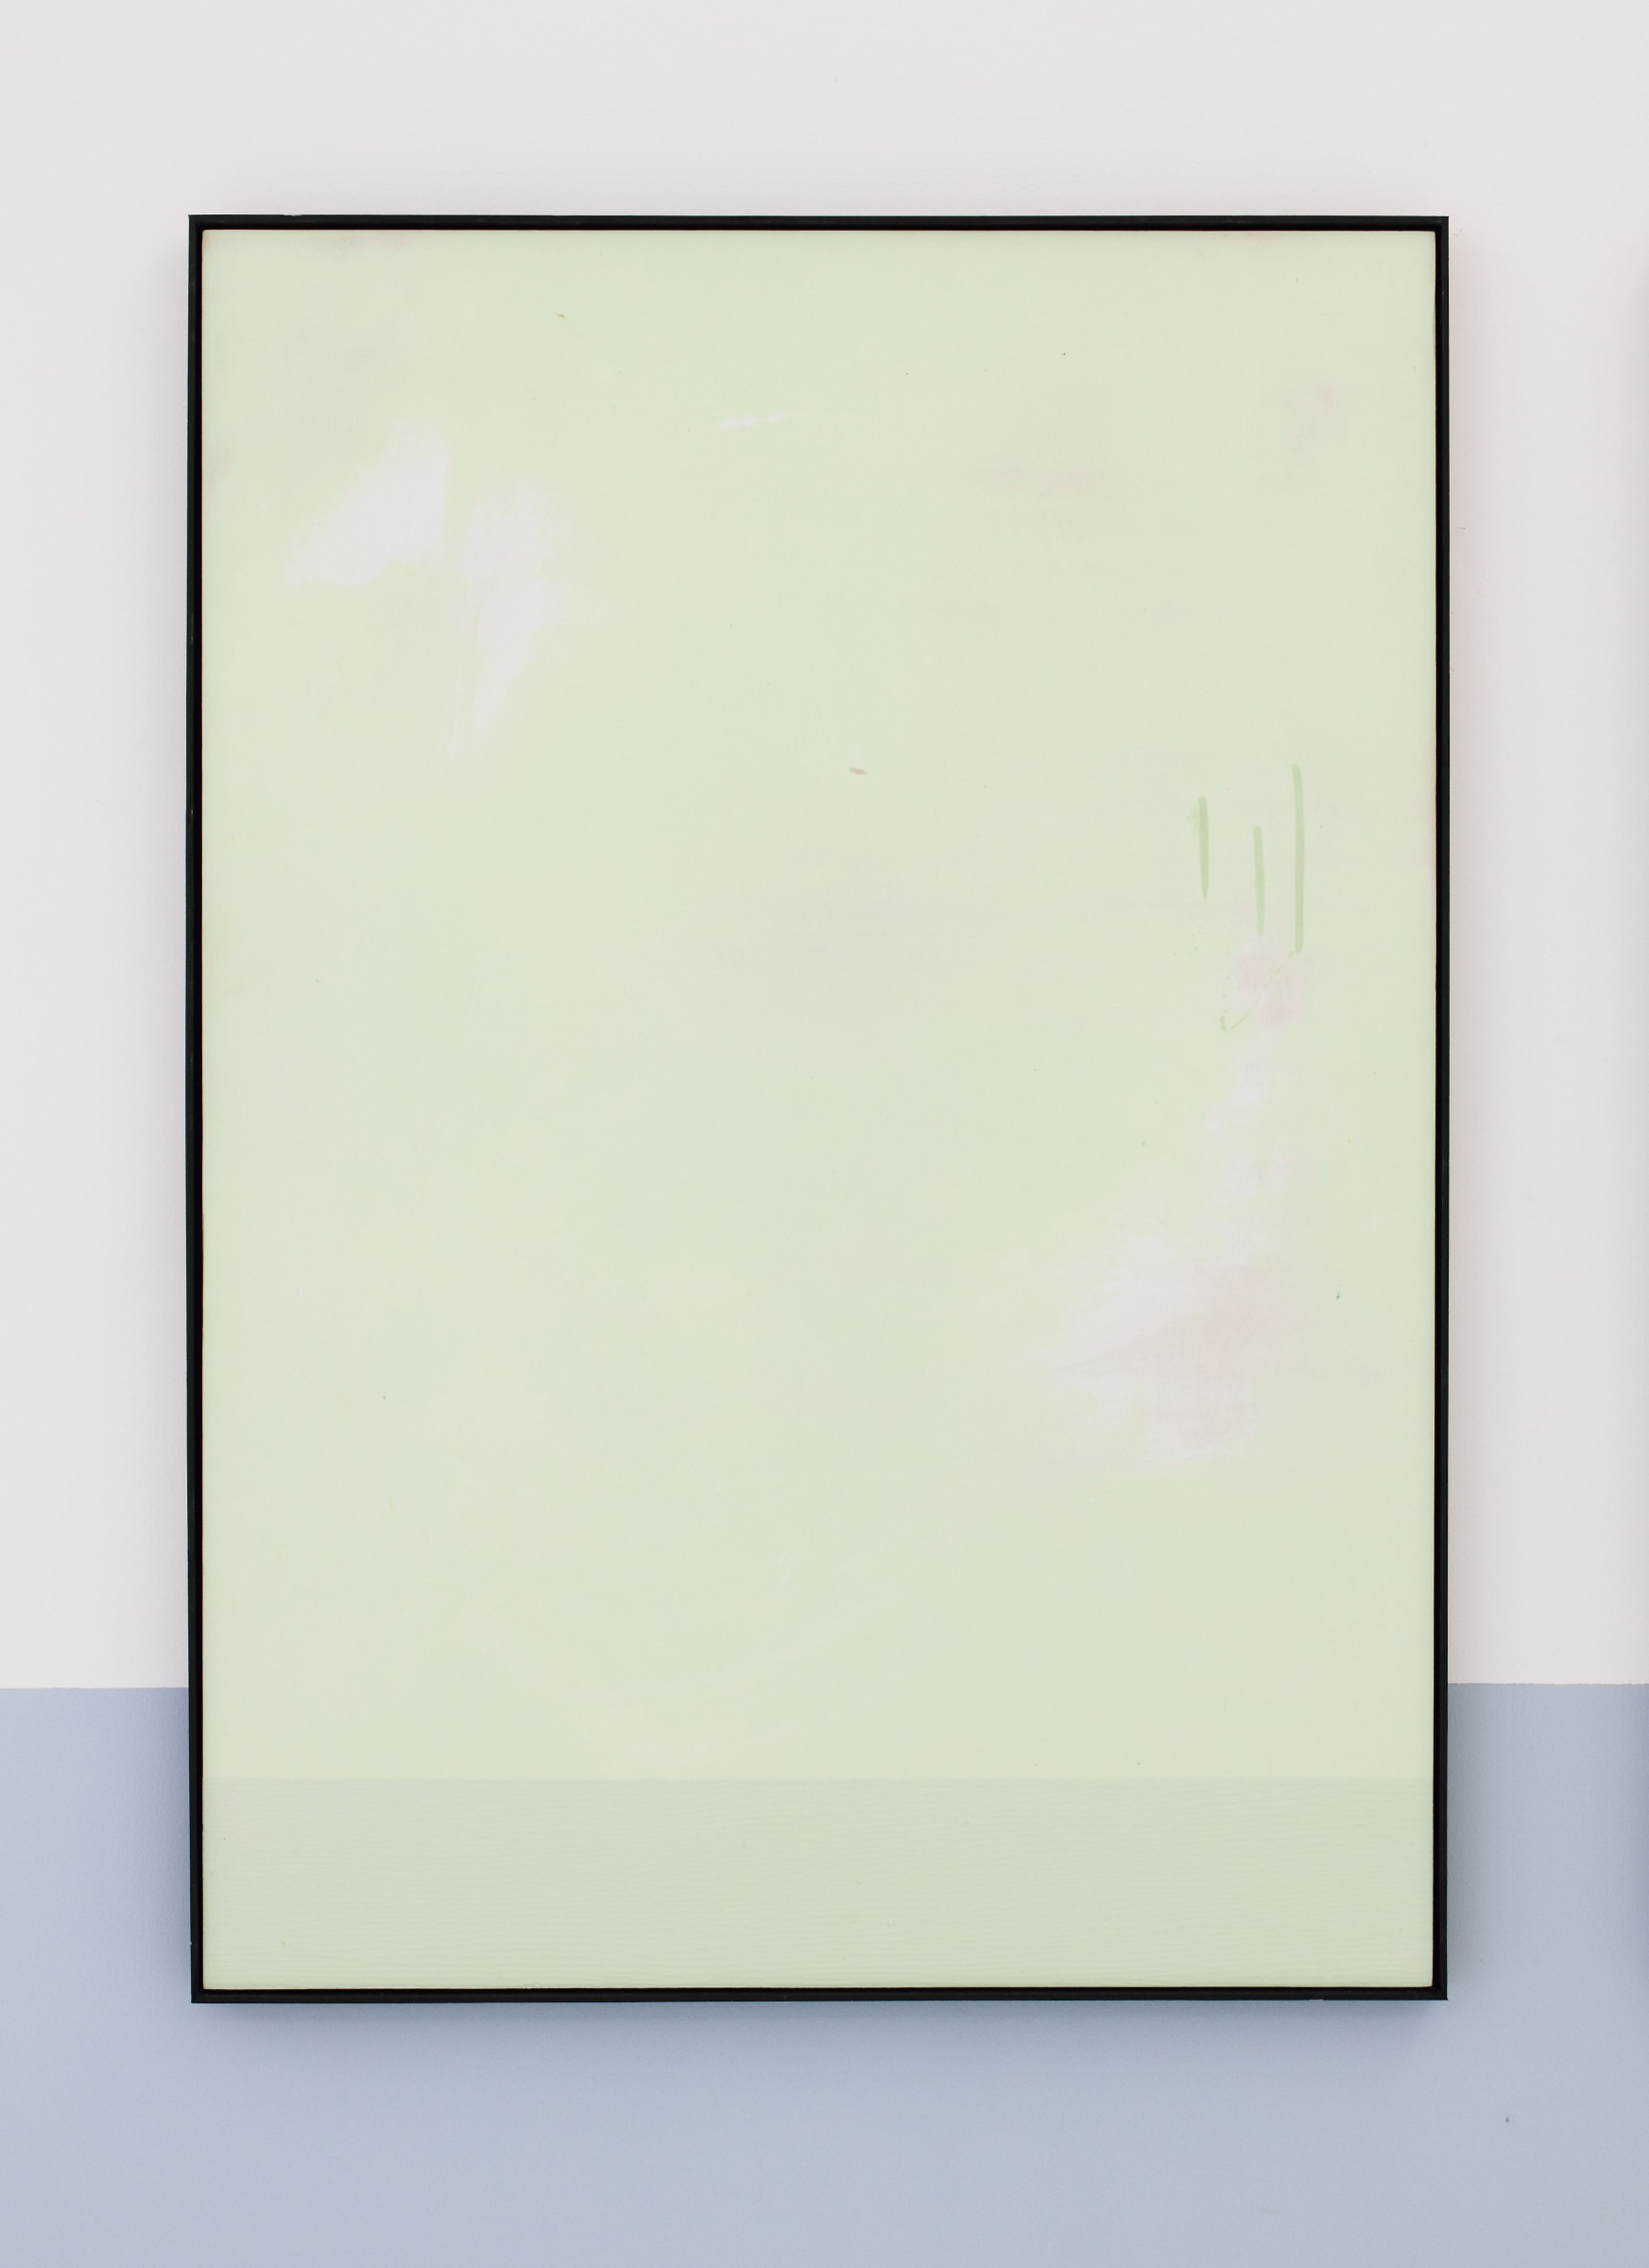 5_Tiziano Martini, 2014, Untitled, water-based paint, acrylic paint and warnish on plywood panel, artist frame, cm 101x71